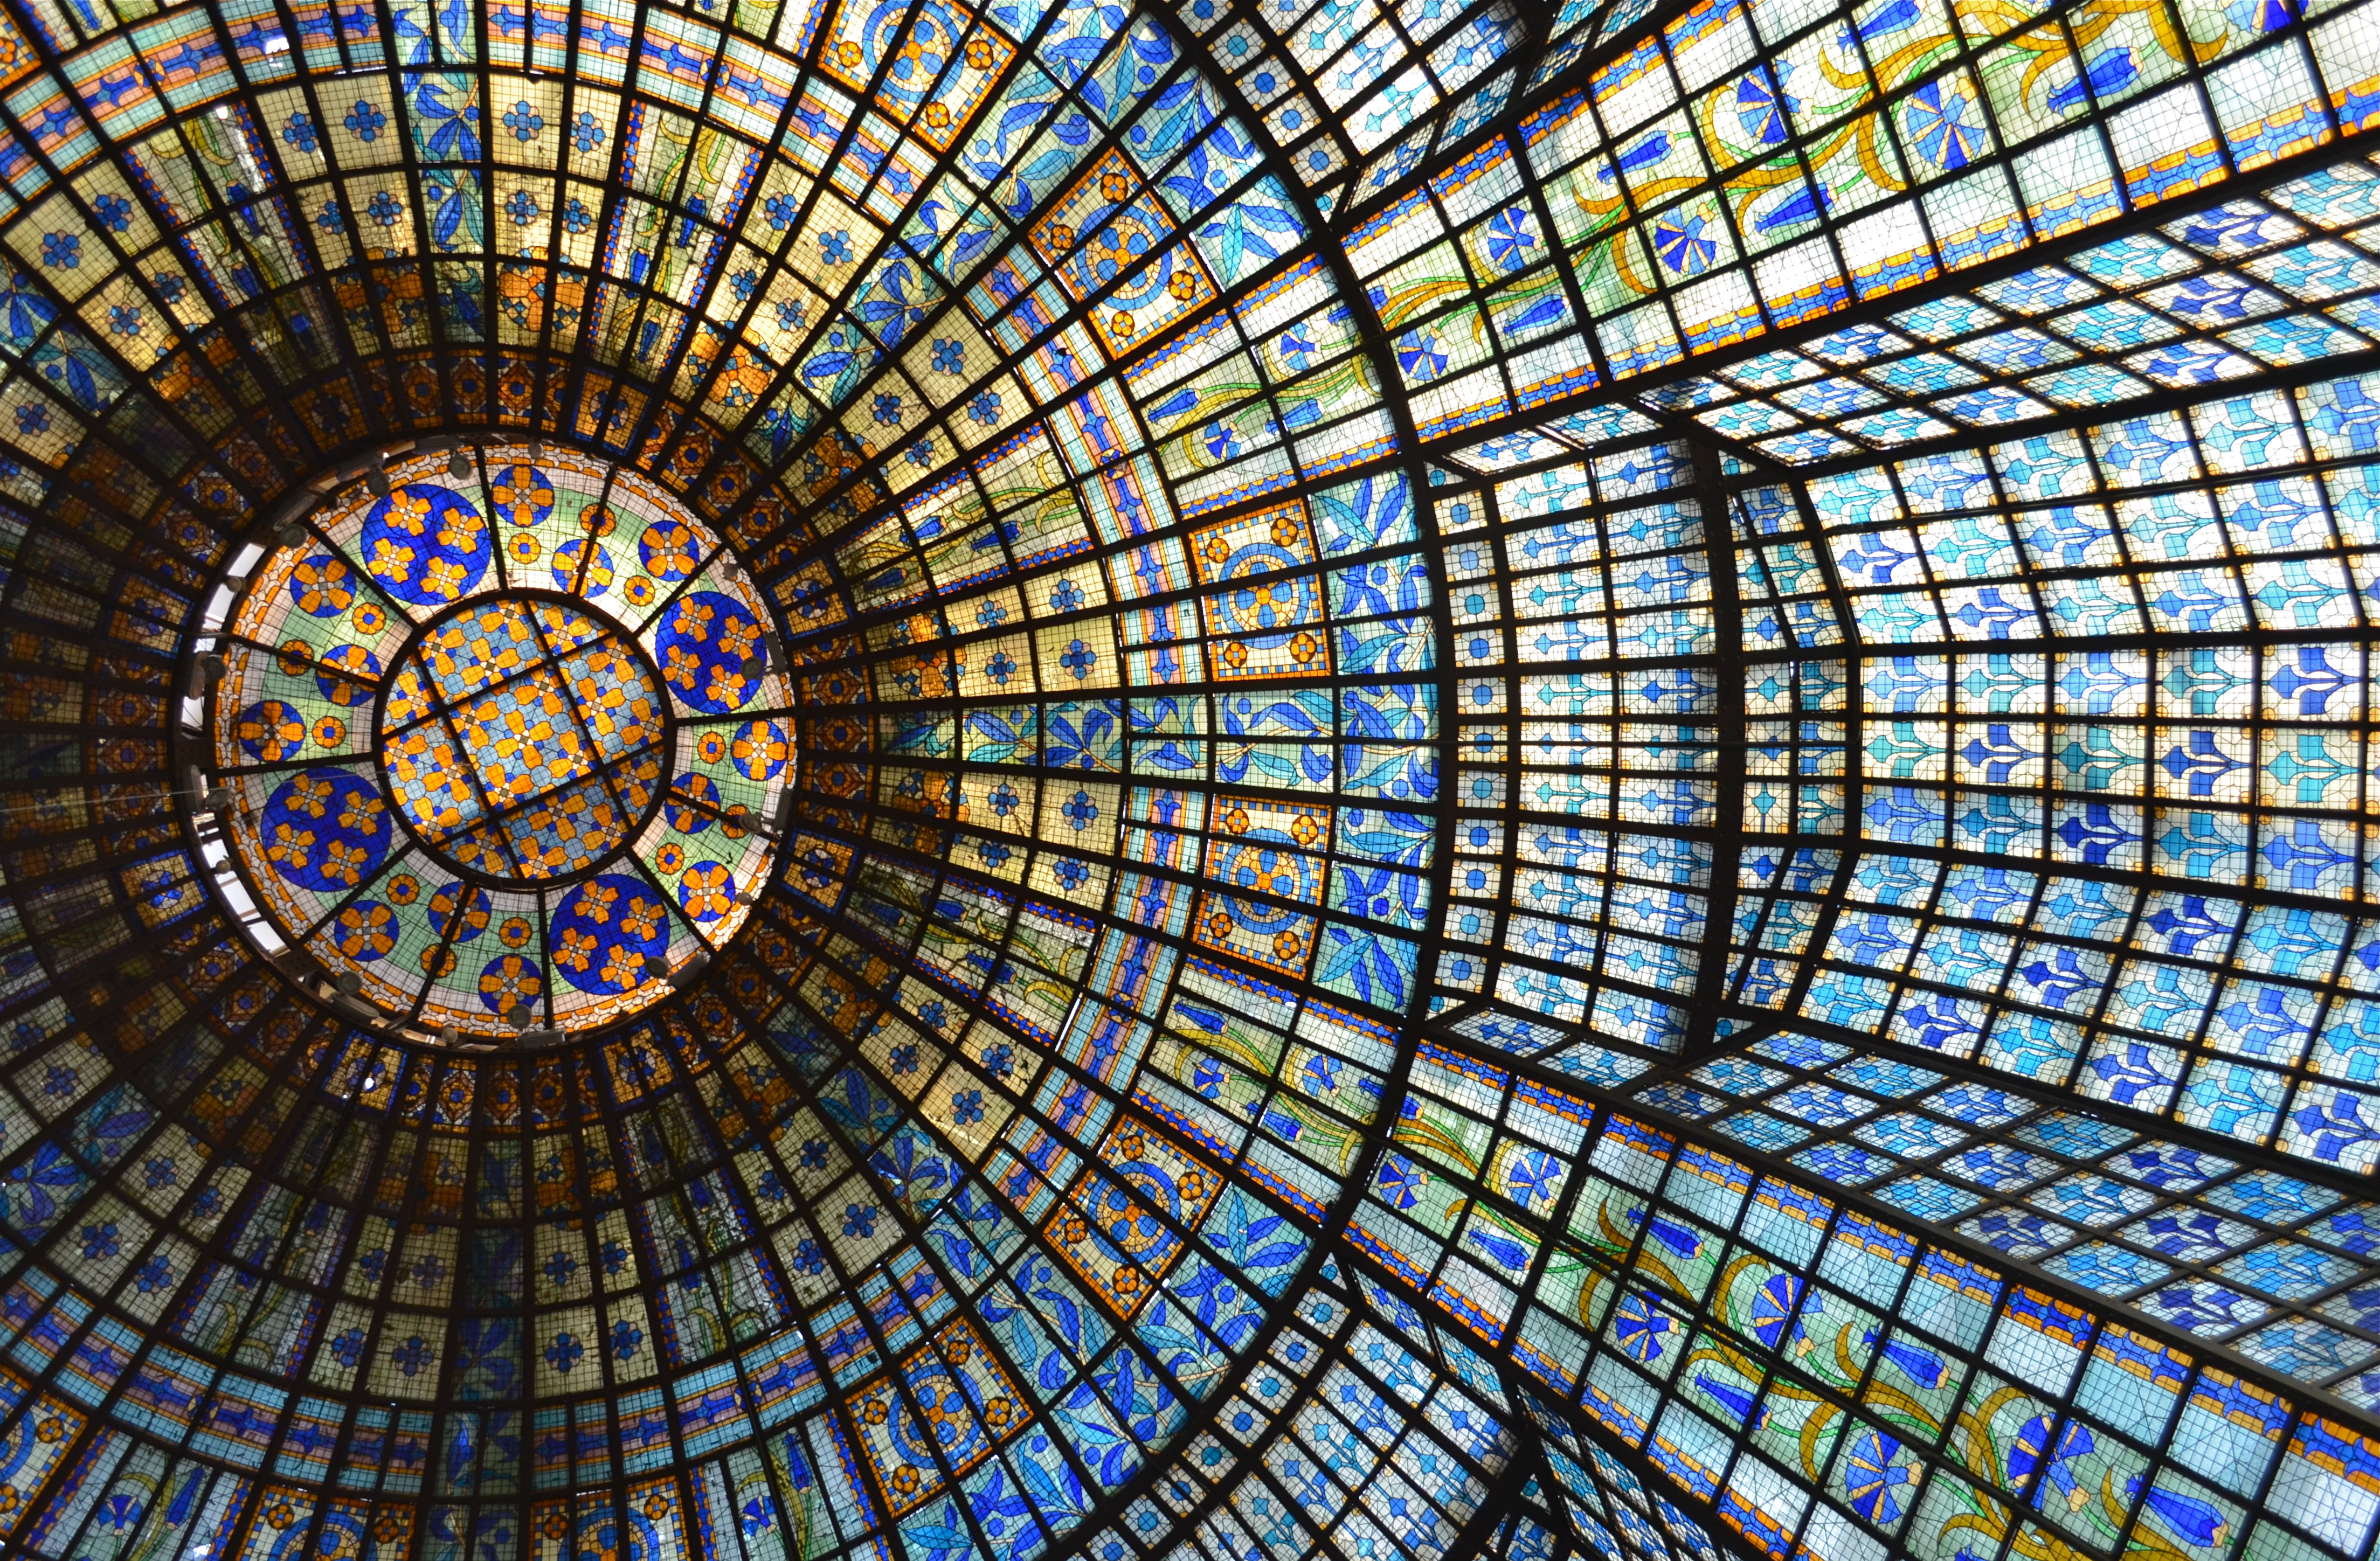 Le Printemps Paris File Paris 9 Printemps Cupola 2 Jpg Wikimedia Commons